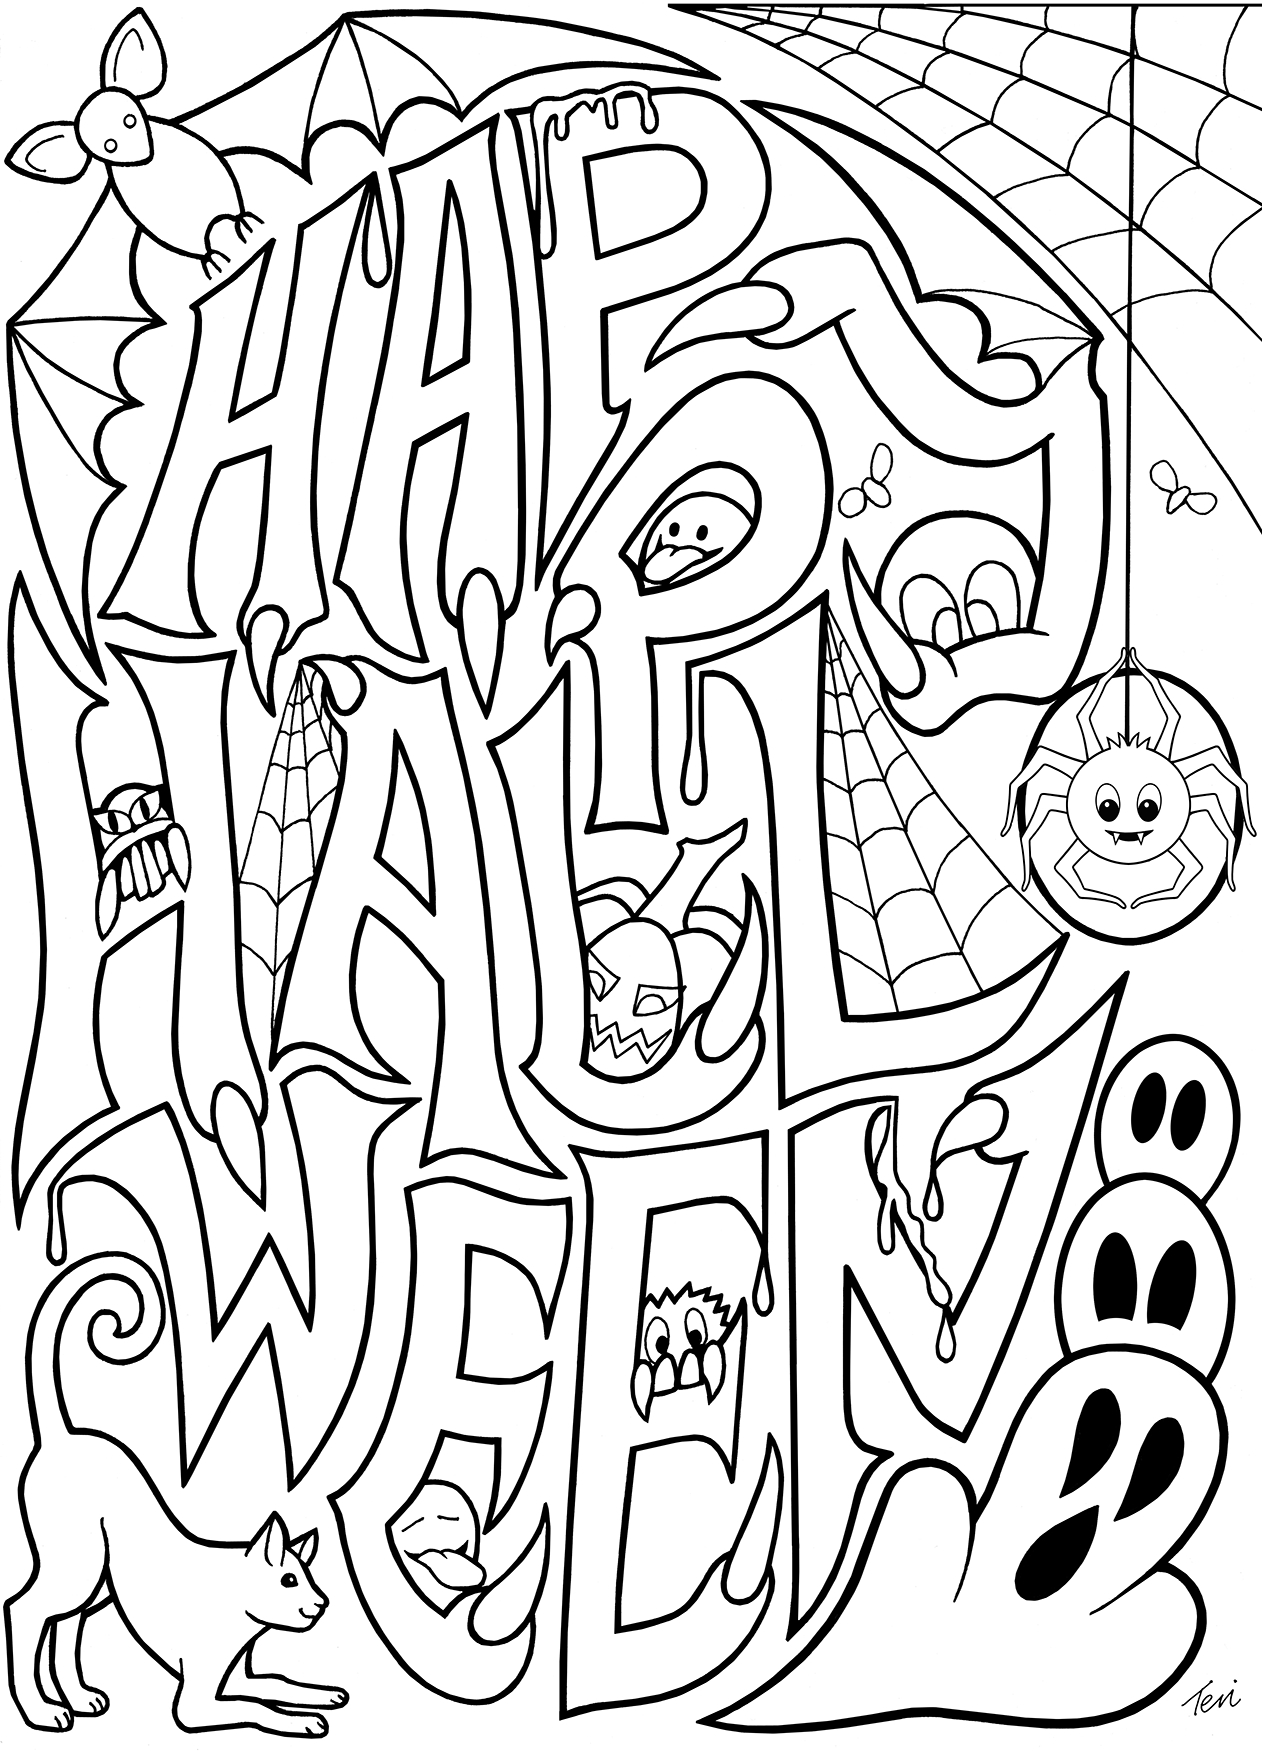 Free Adult Coloring Book Pages #happy #halloweenblue Star - Printable Halloween Cards To Color For Free